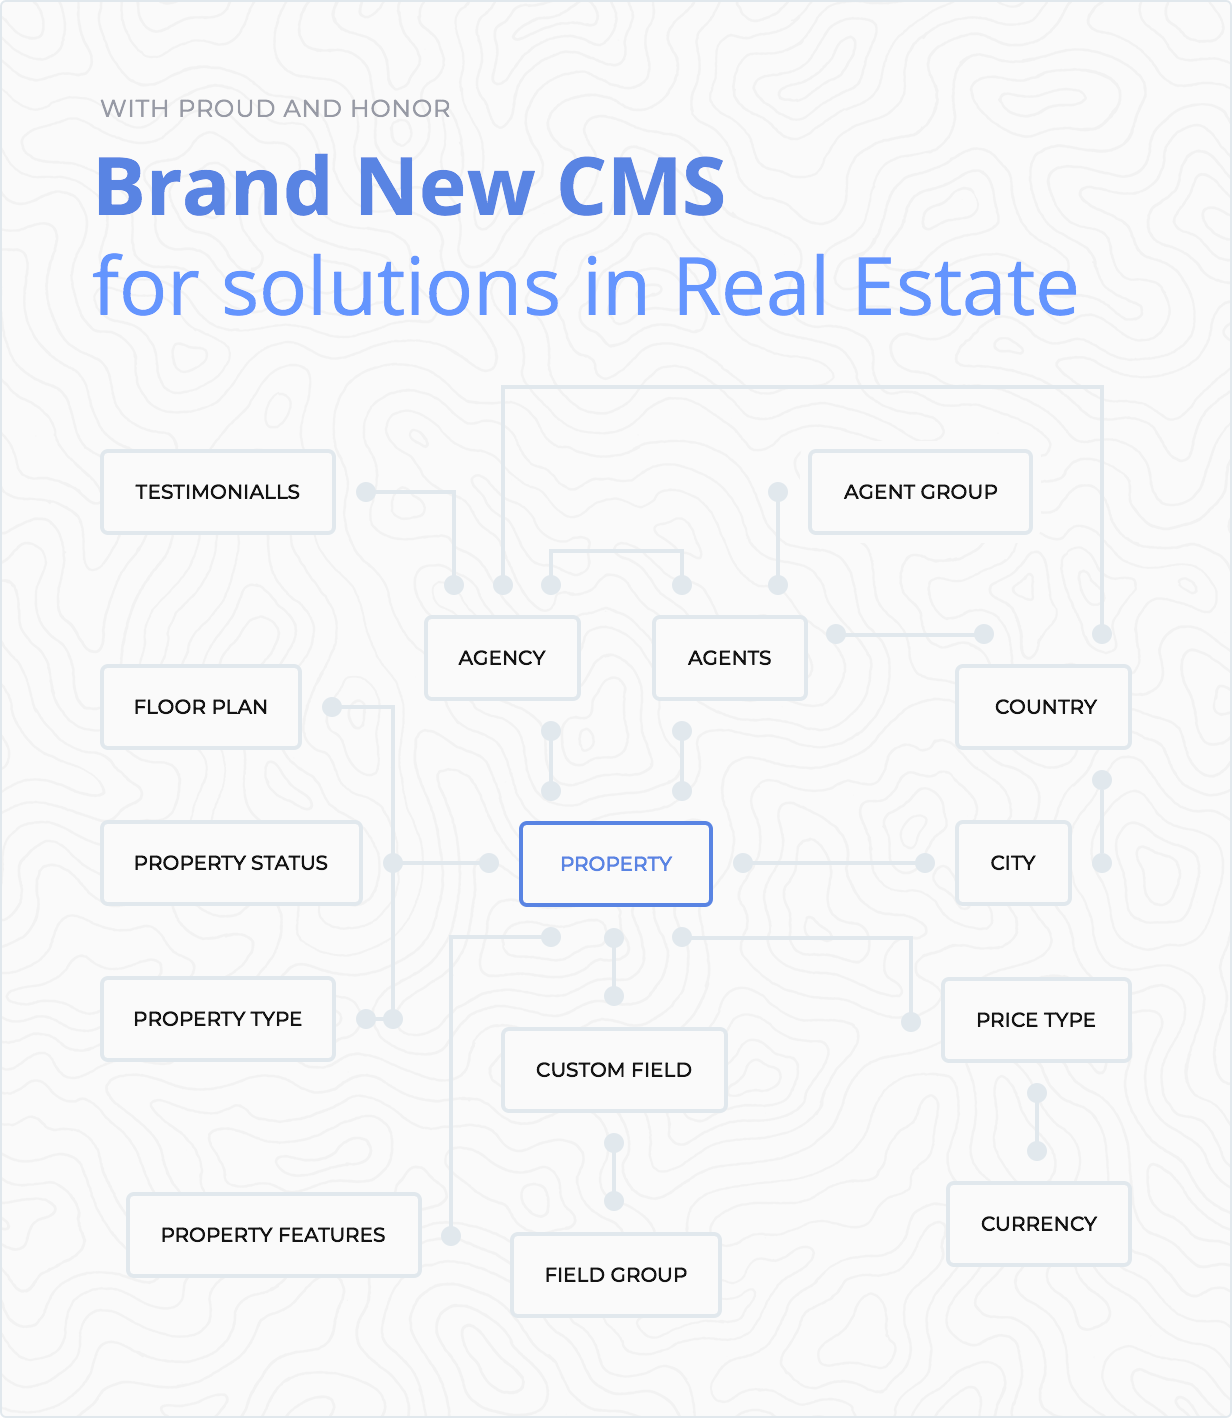 Brand New Content Management System for solutions in Real Estate